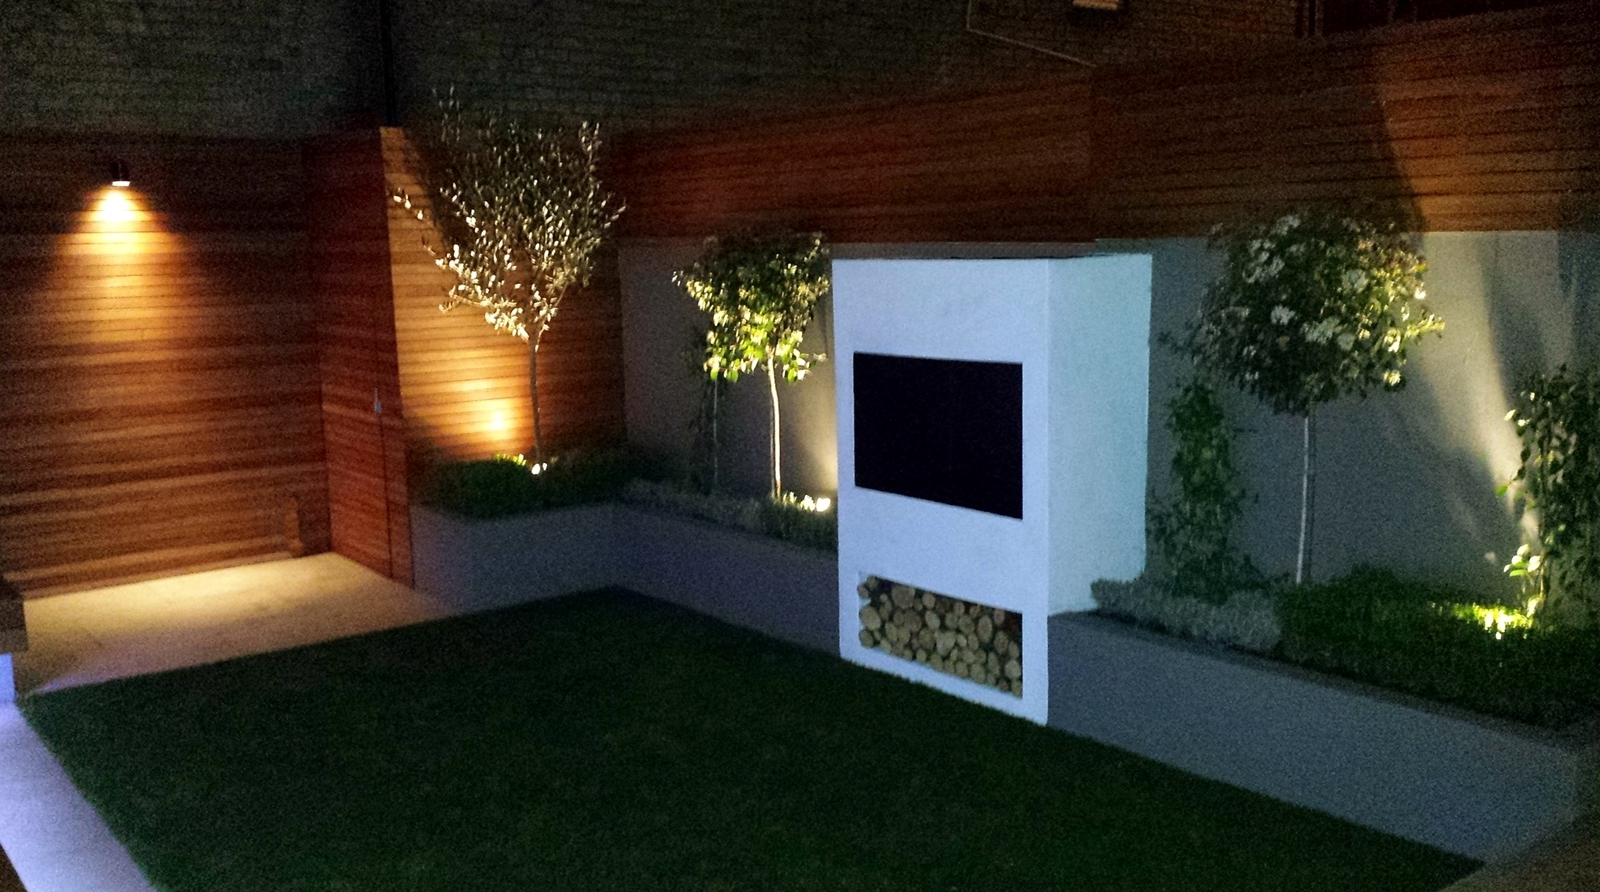 Garden Outdoor Wall Lights For Current Great Amazing Garden Designs With Led Lights Modernbathroom (View 9 of 20)